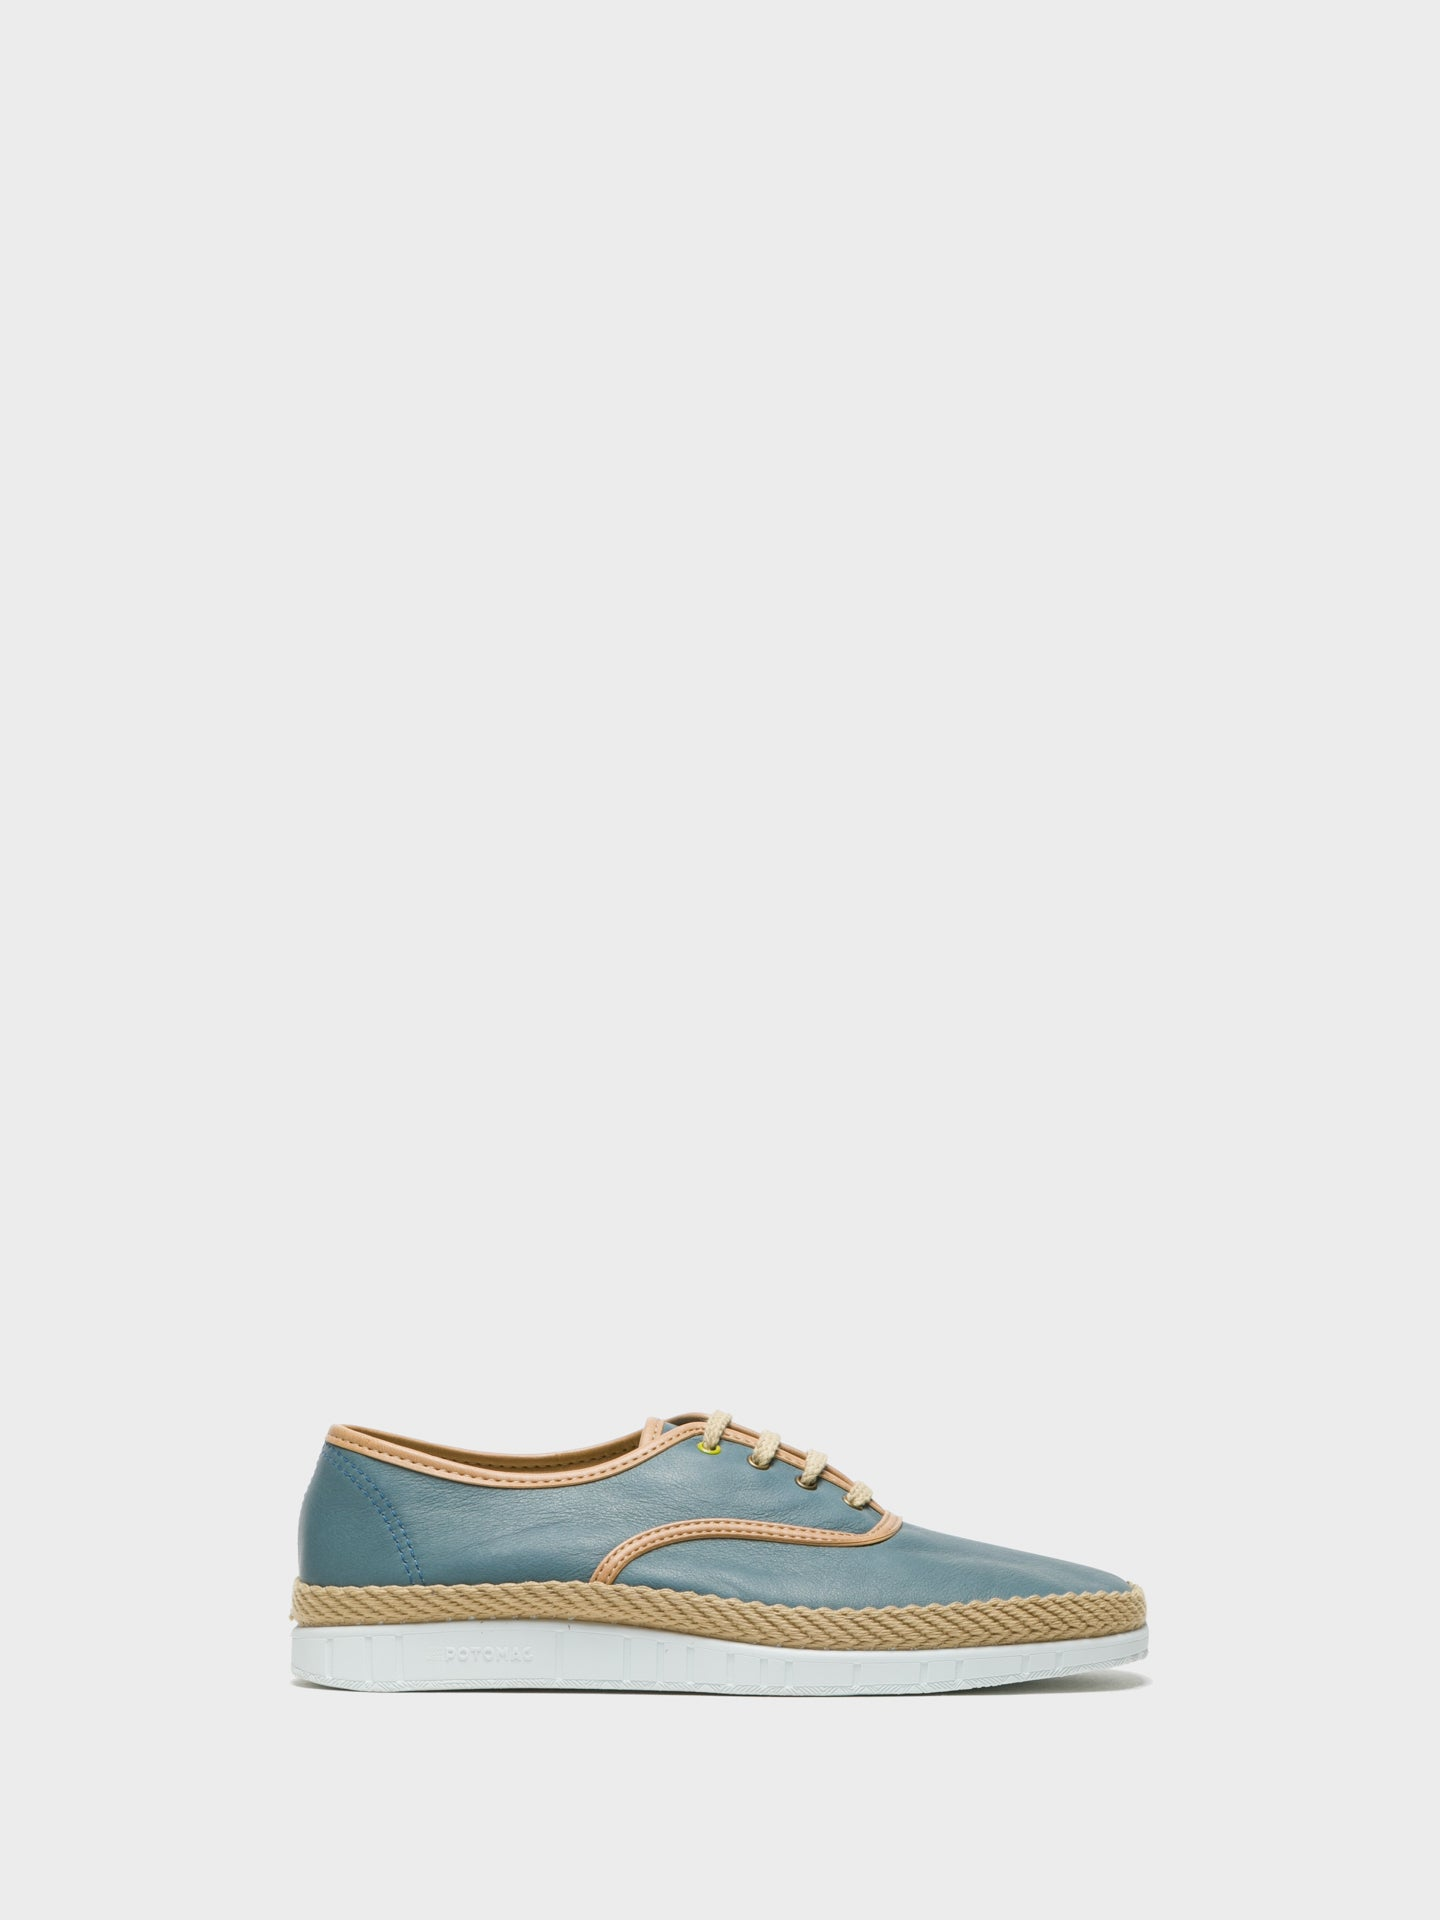 Foreva Blue Lace-up Shoes